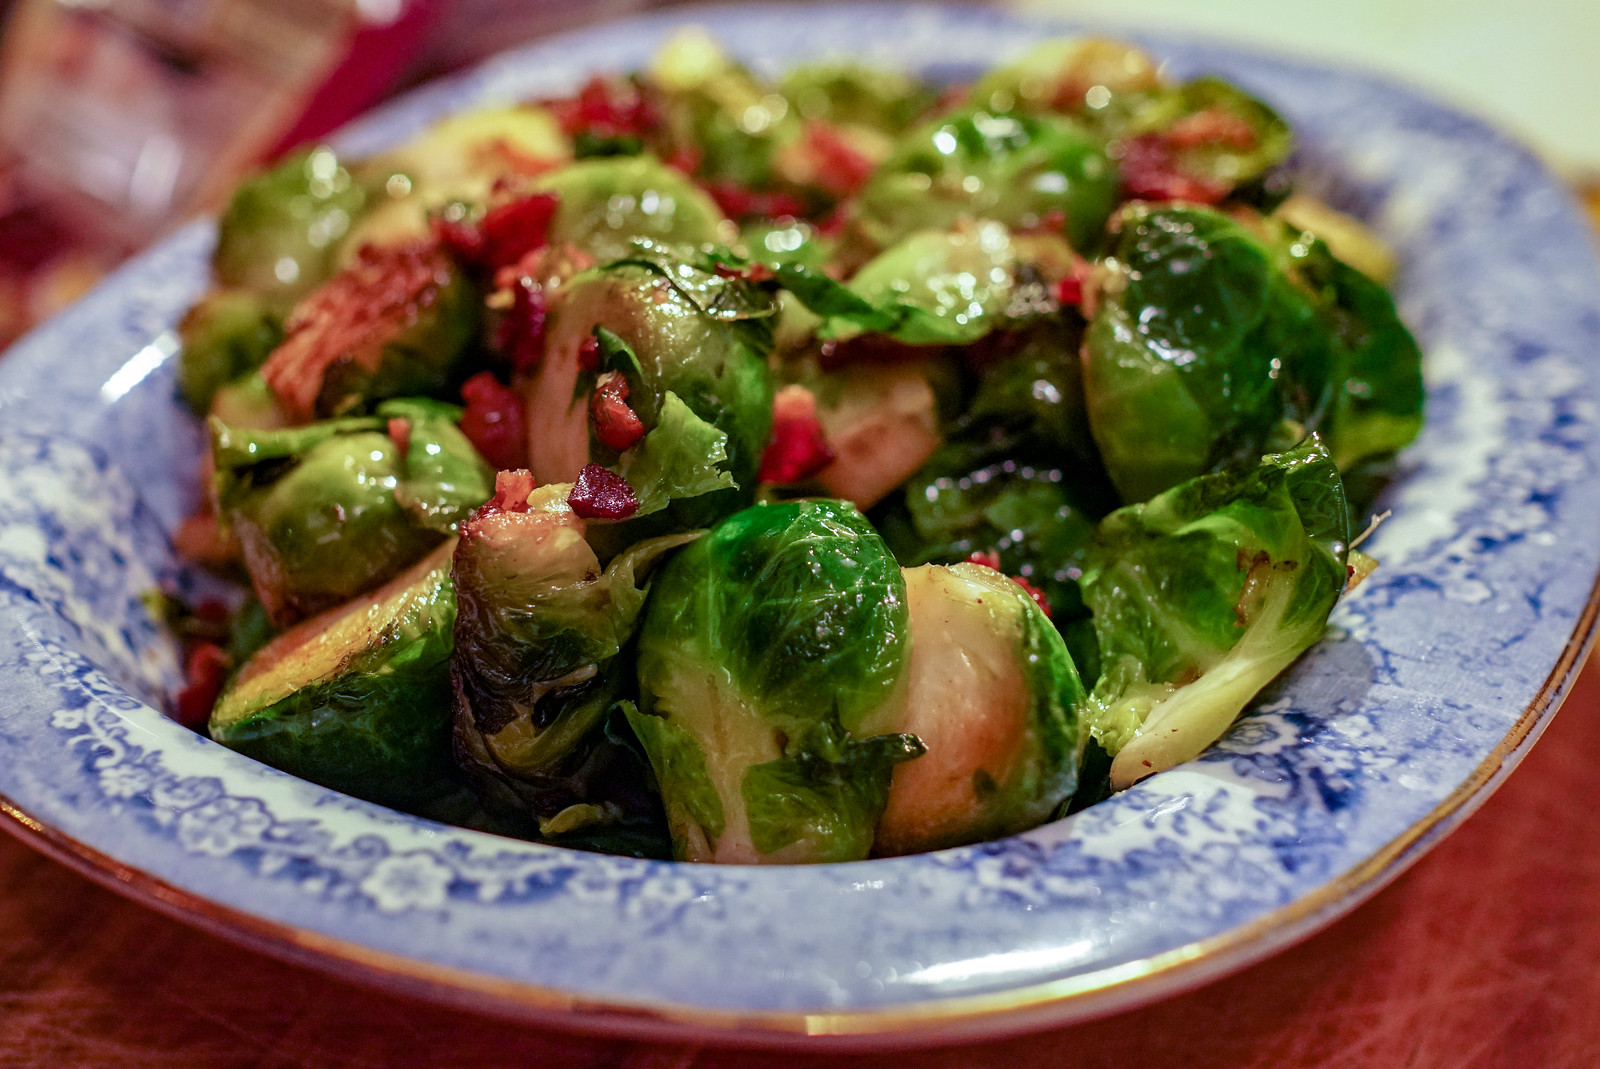 Brussels Sprouts with Bacon (Low Carbohydrate, Healthy Fat)